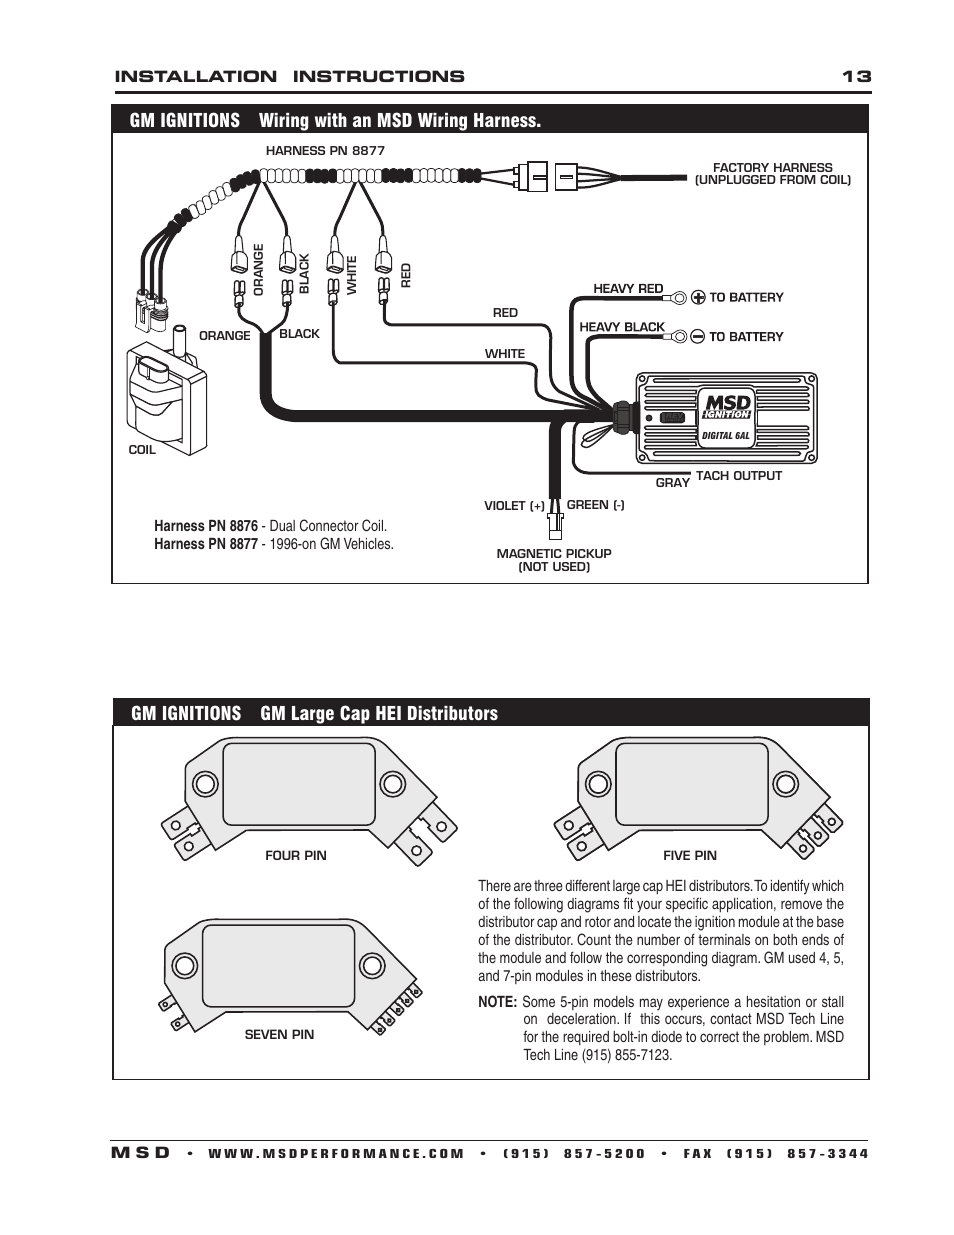 msd 6201 digital 6a ignition control page13?resize\\\\\\\=665%2C861 hei msd 8680 wiring diagram msd digital 7 plus diagram, msd jacobs ignition wiring diagram at soozxer.org